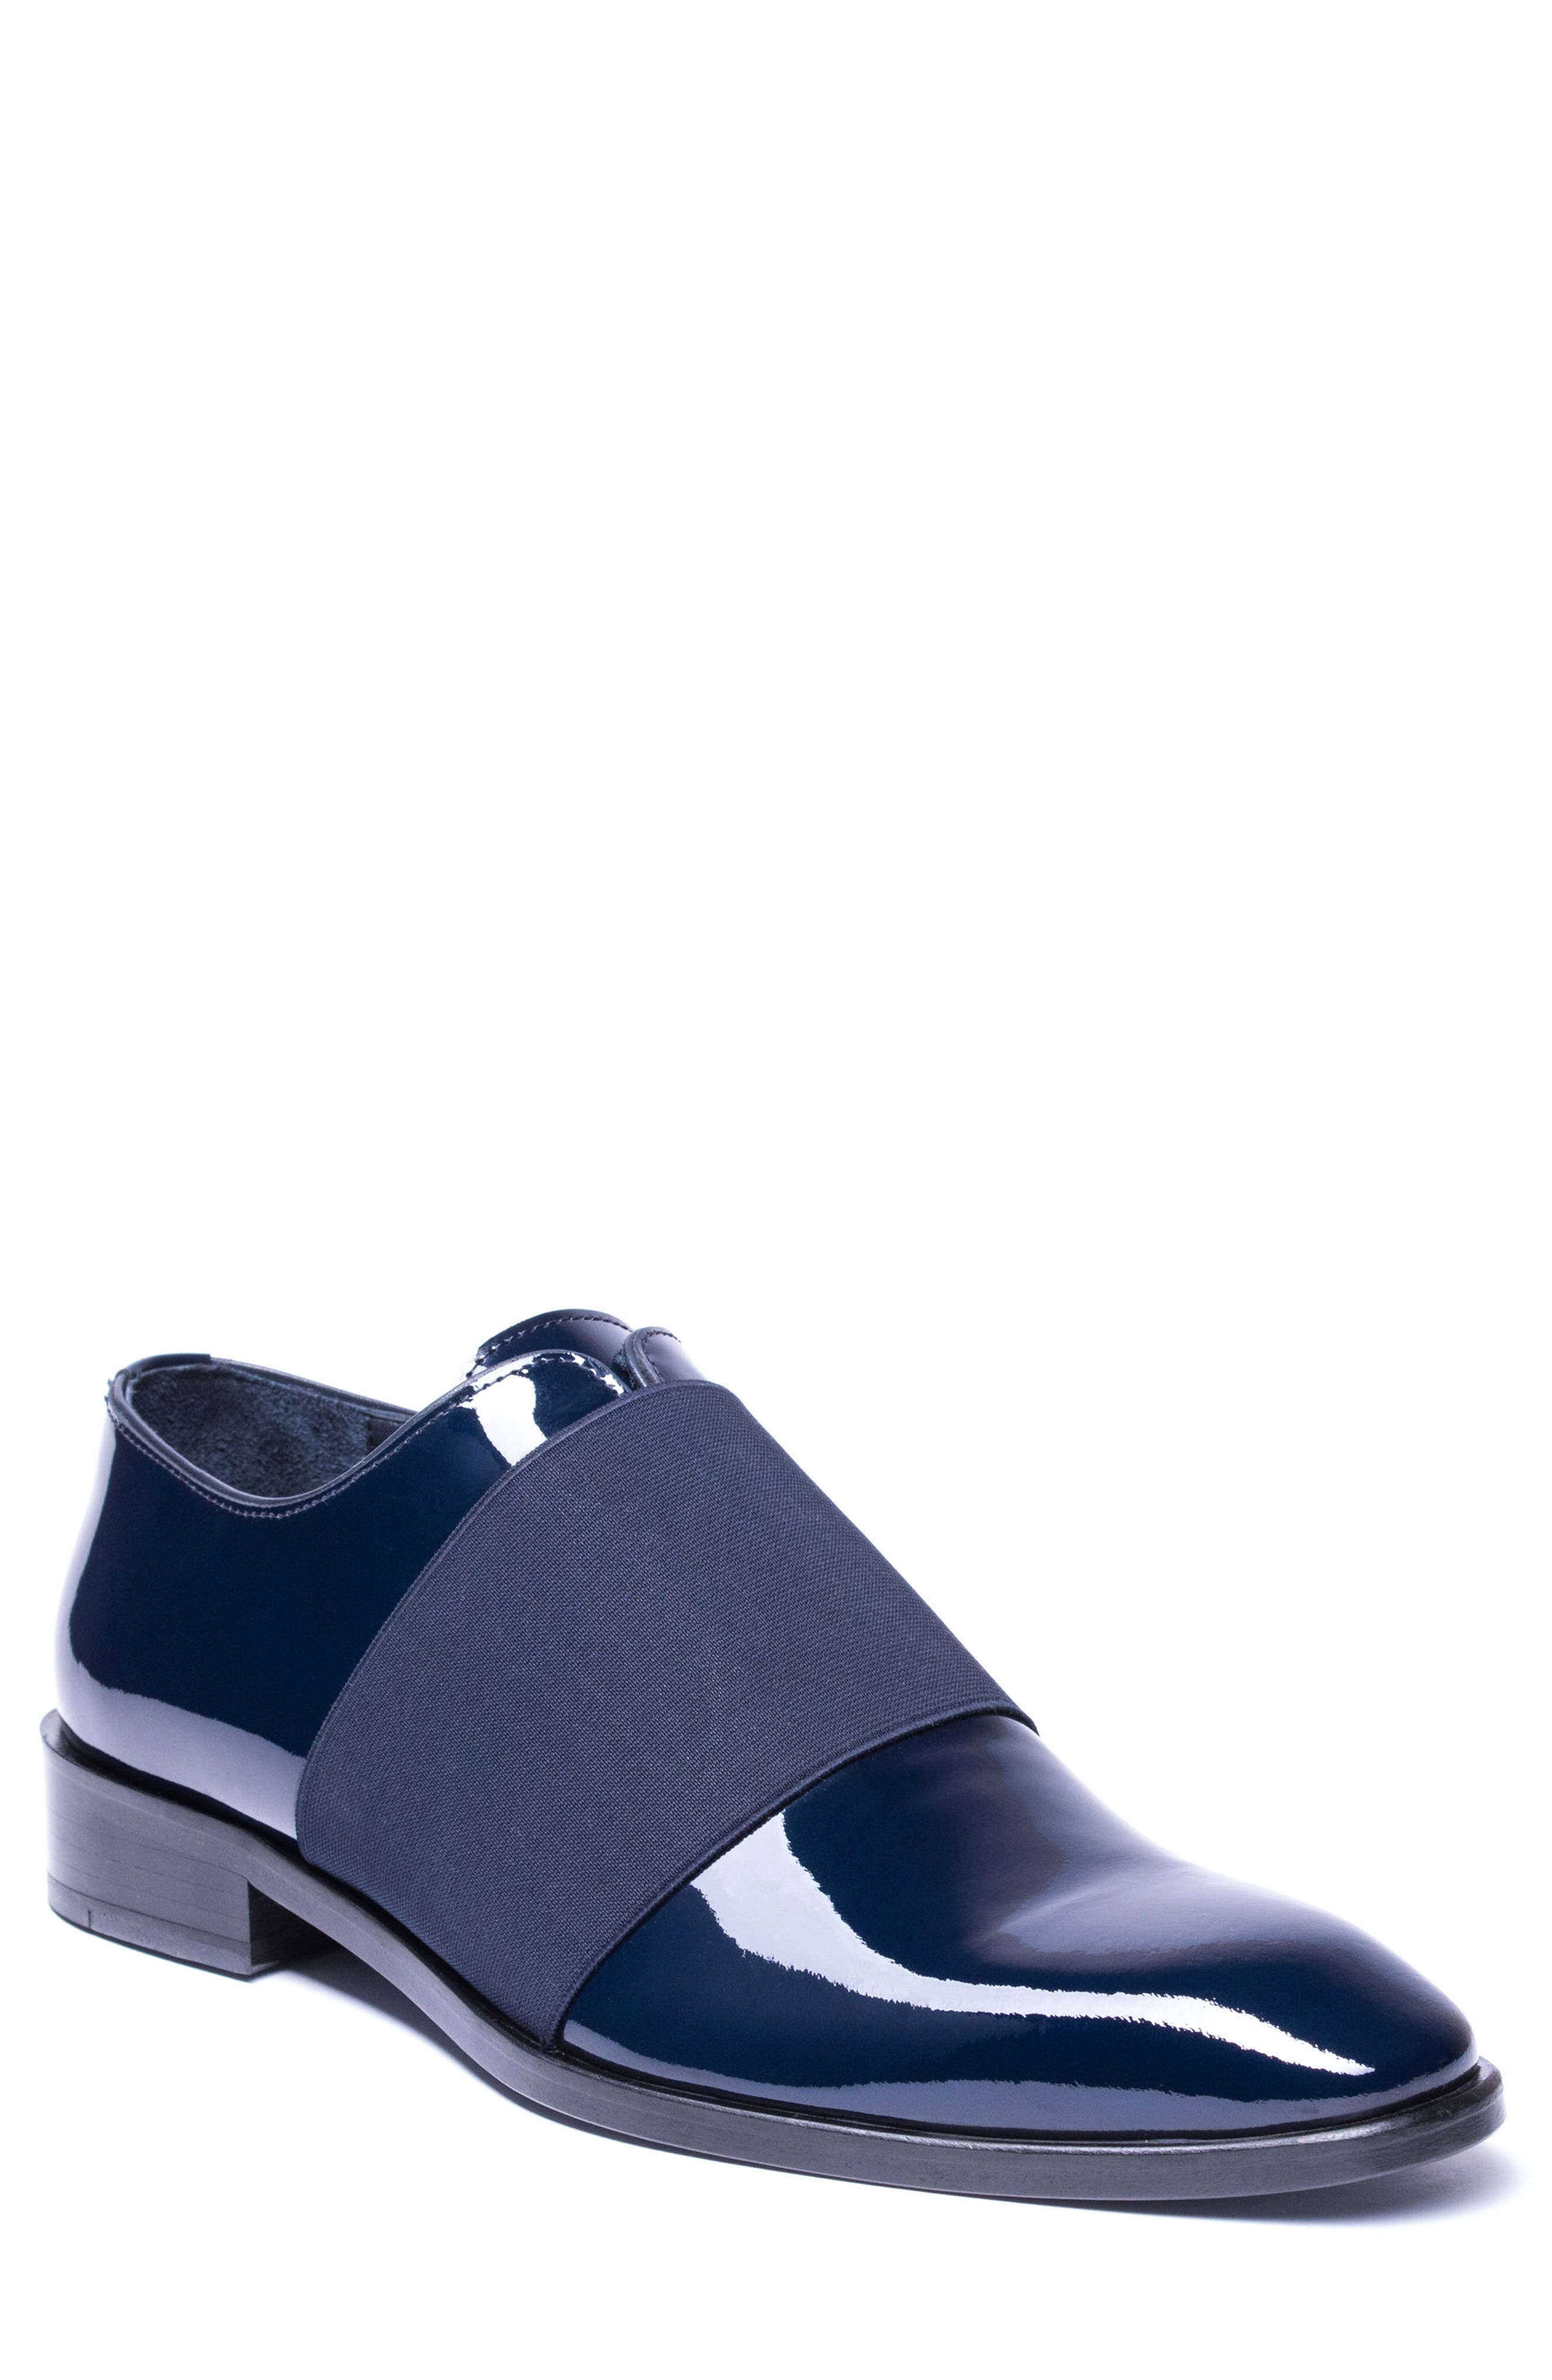 Vincenzo Whole Cut Slip-On,                             Main thumbnail 1, color,                             Navy Leather